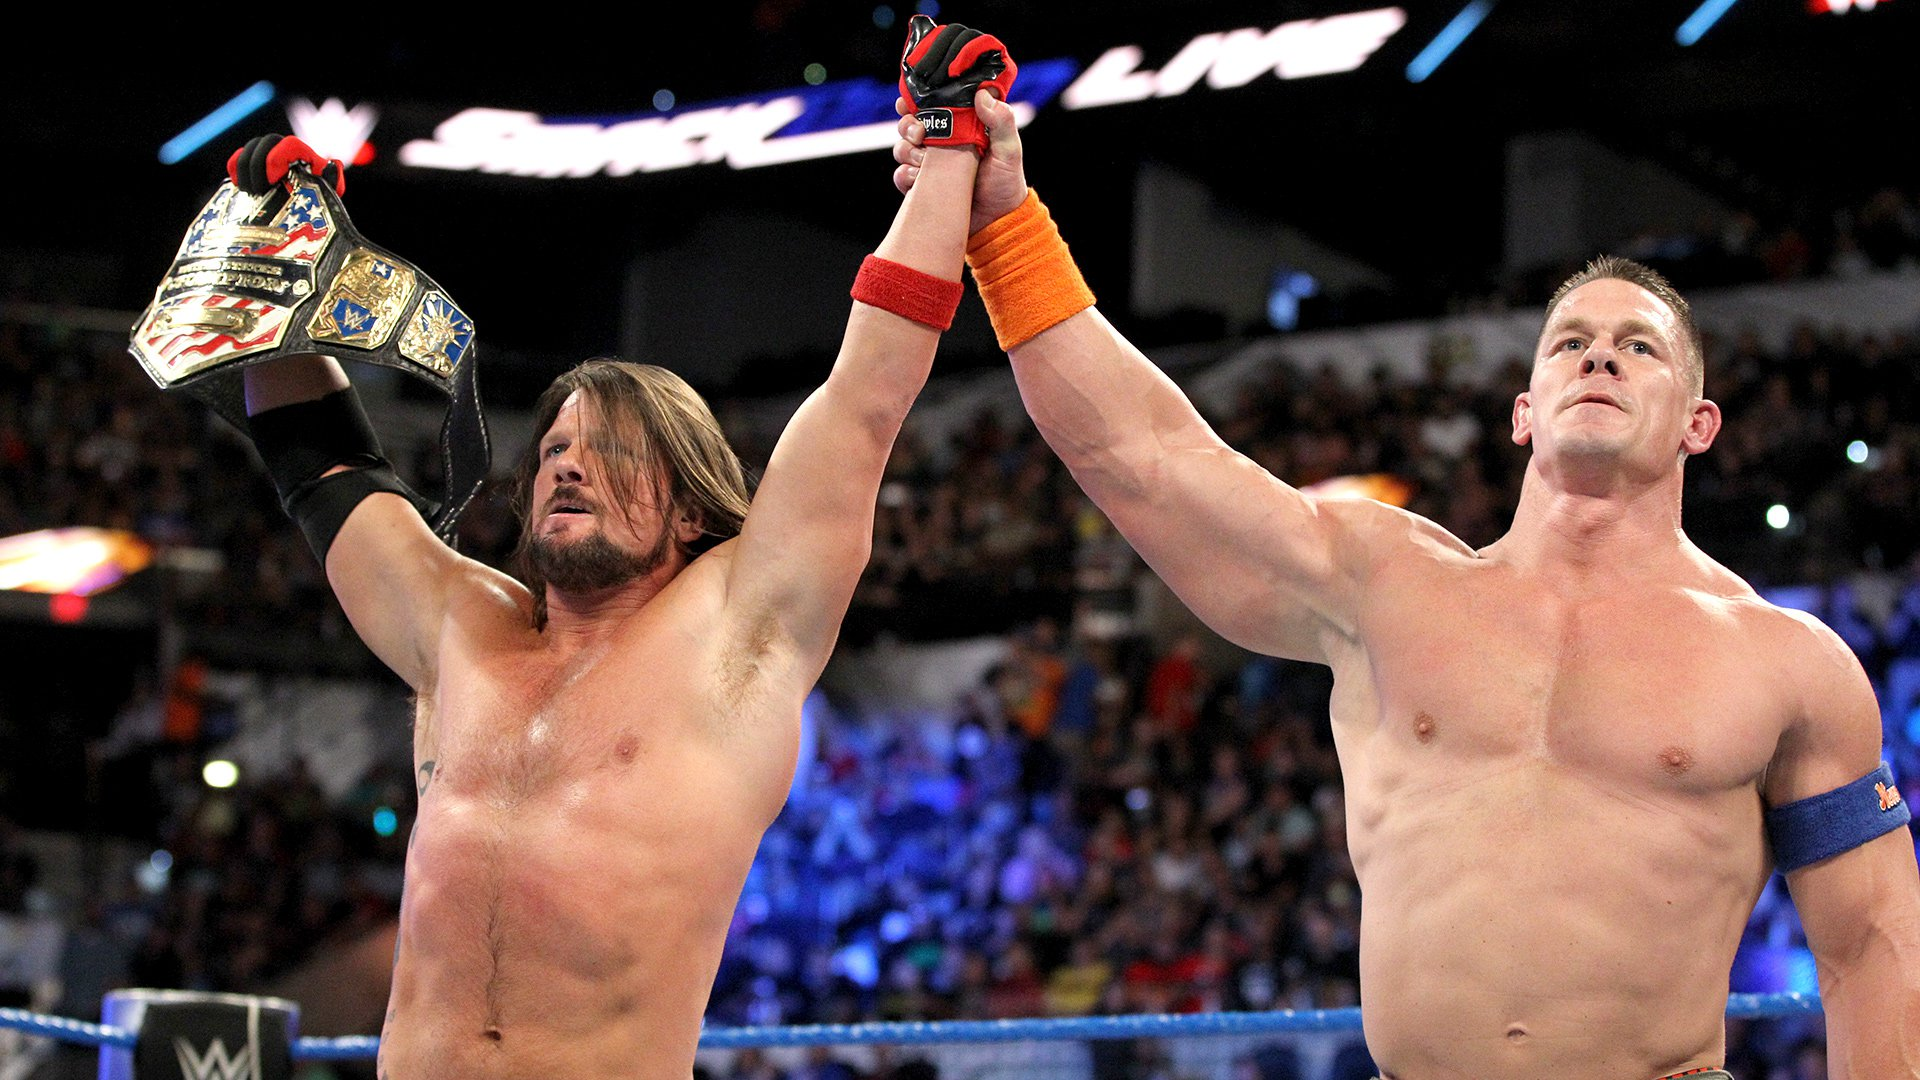 ... and Cena raises the arm of the United States Champion.